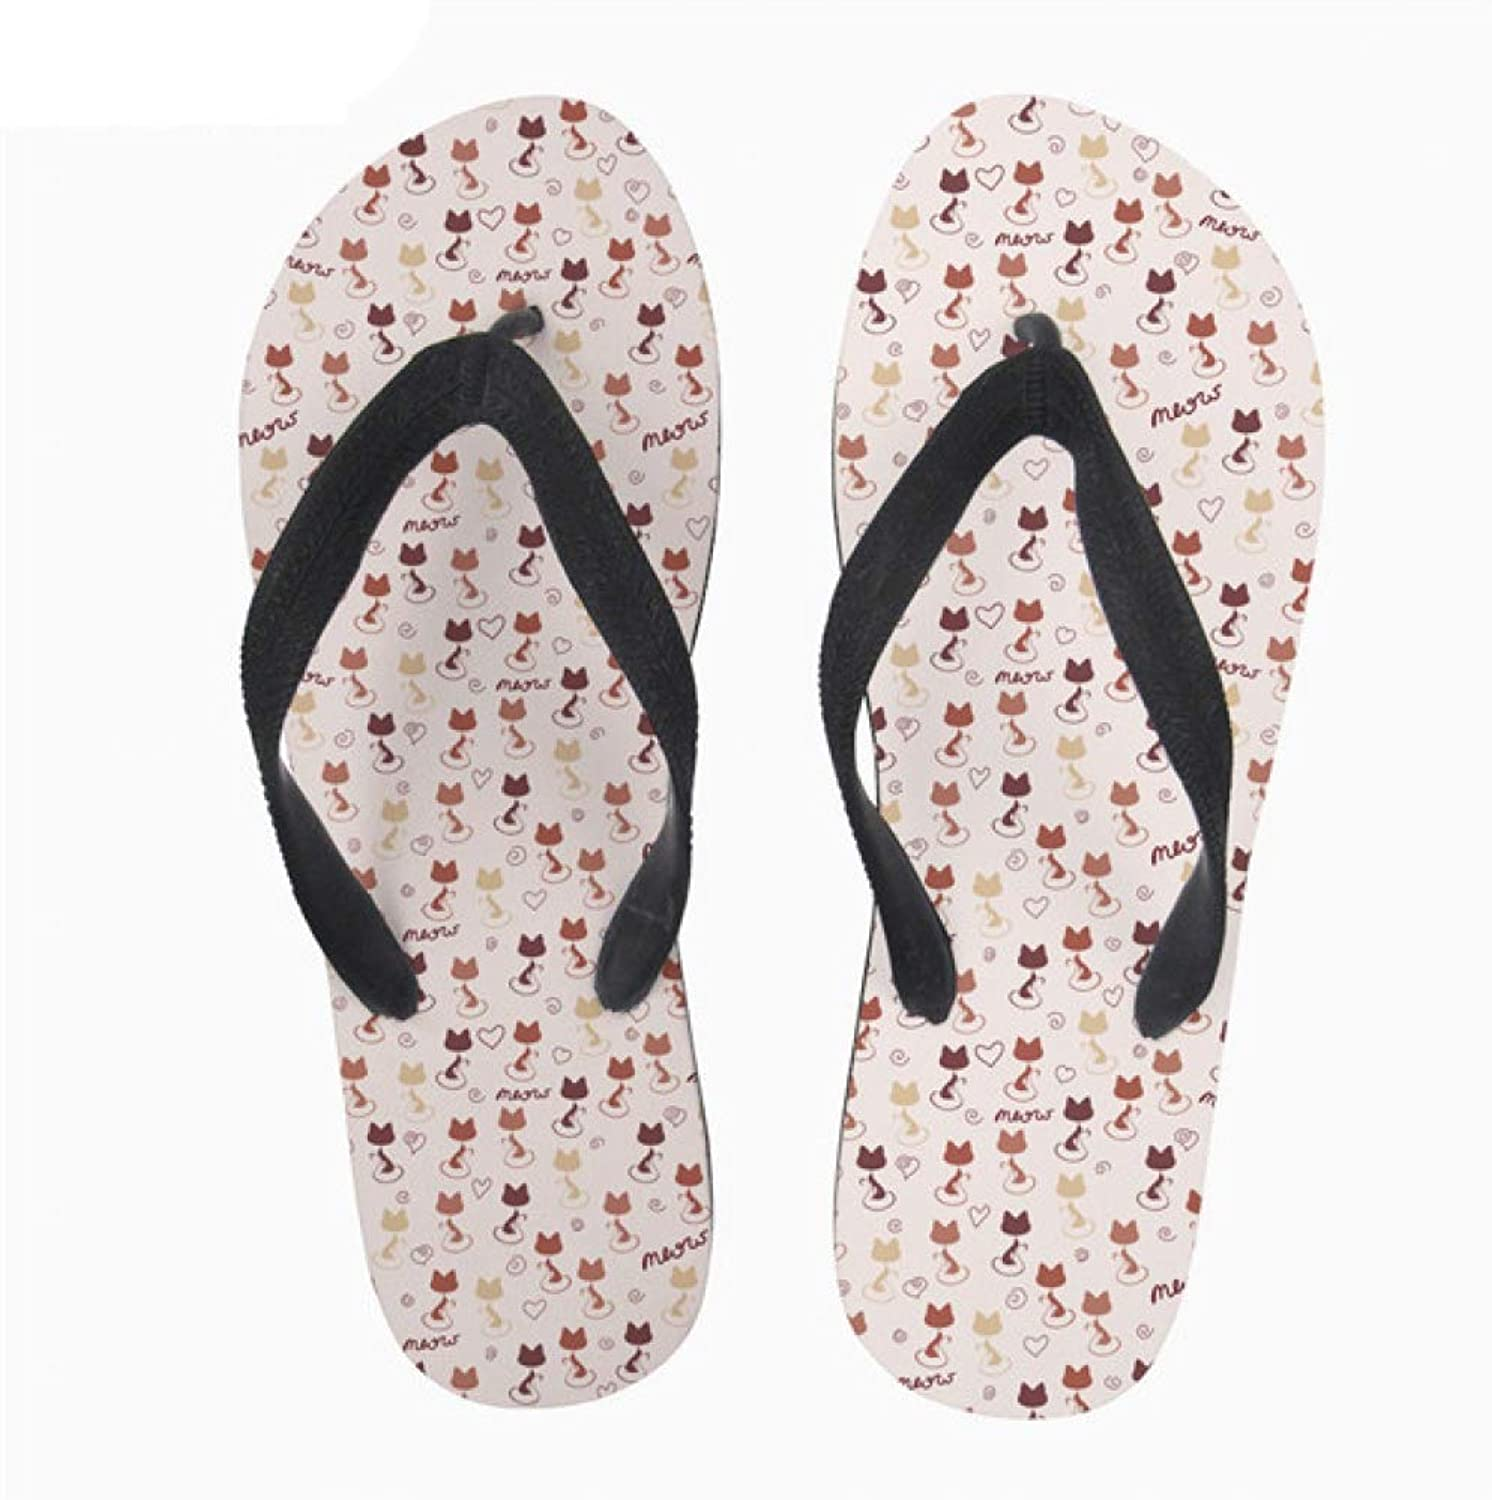 MEIZOKEN Feminino Cartoon Pusheen Cat Women Casual Summer Flip Flops Woman Girl Slip-on Home Beach Slippers shoes